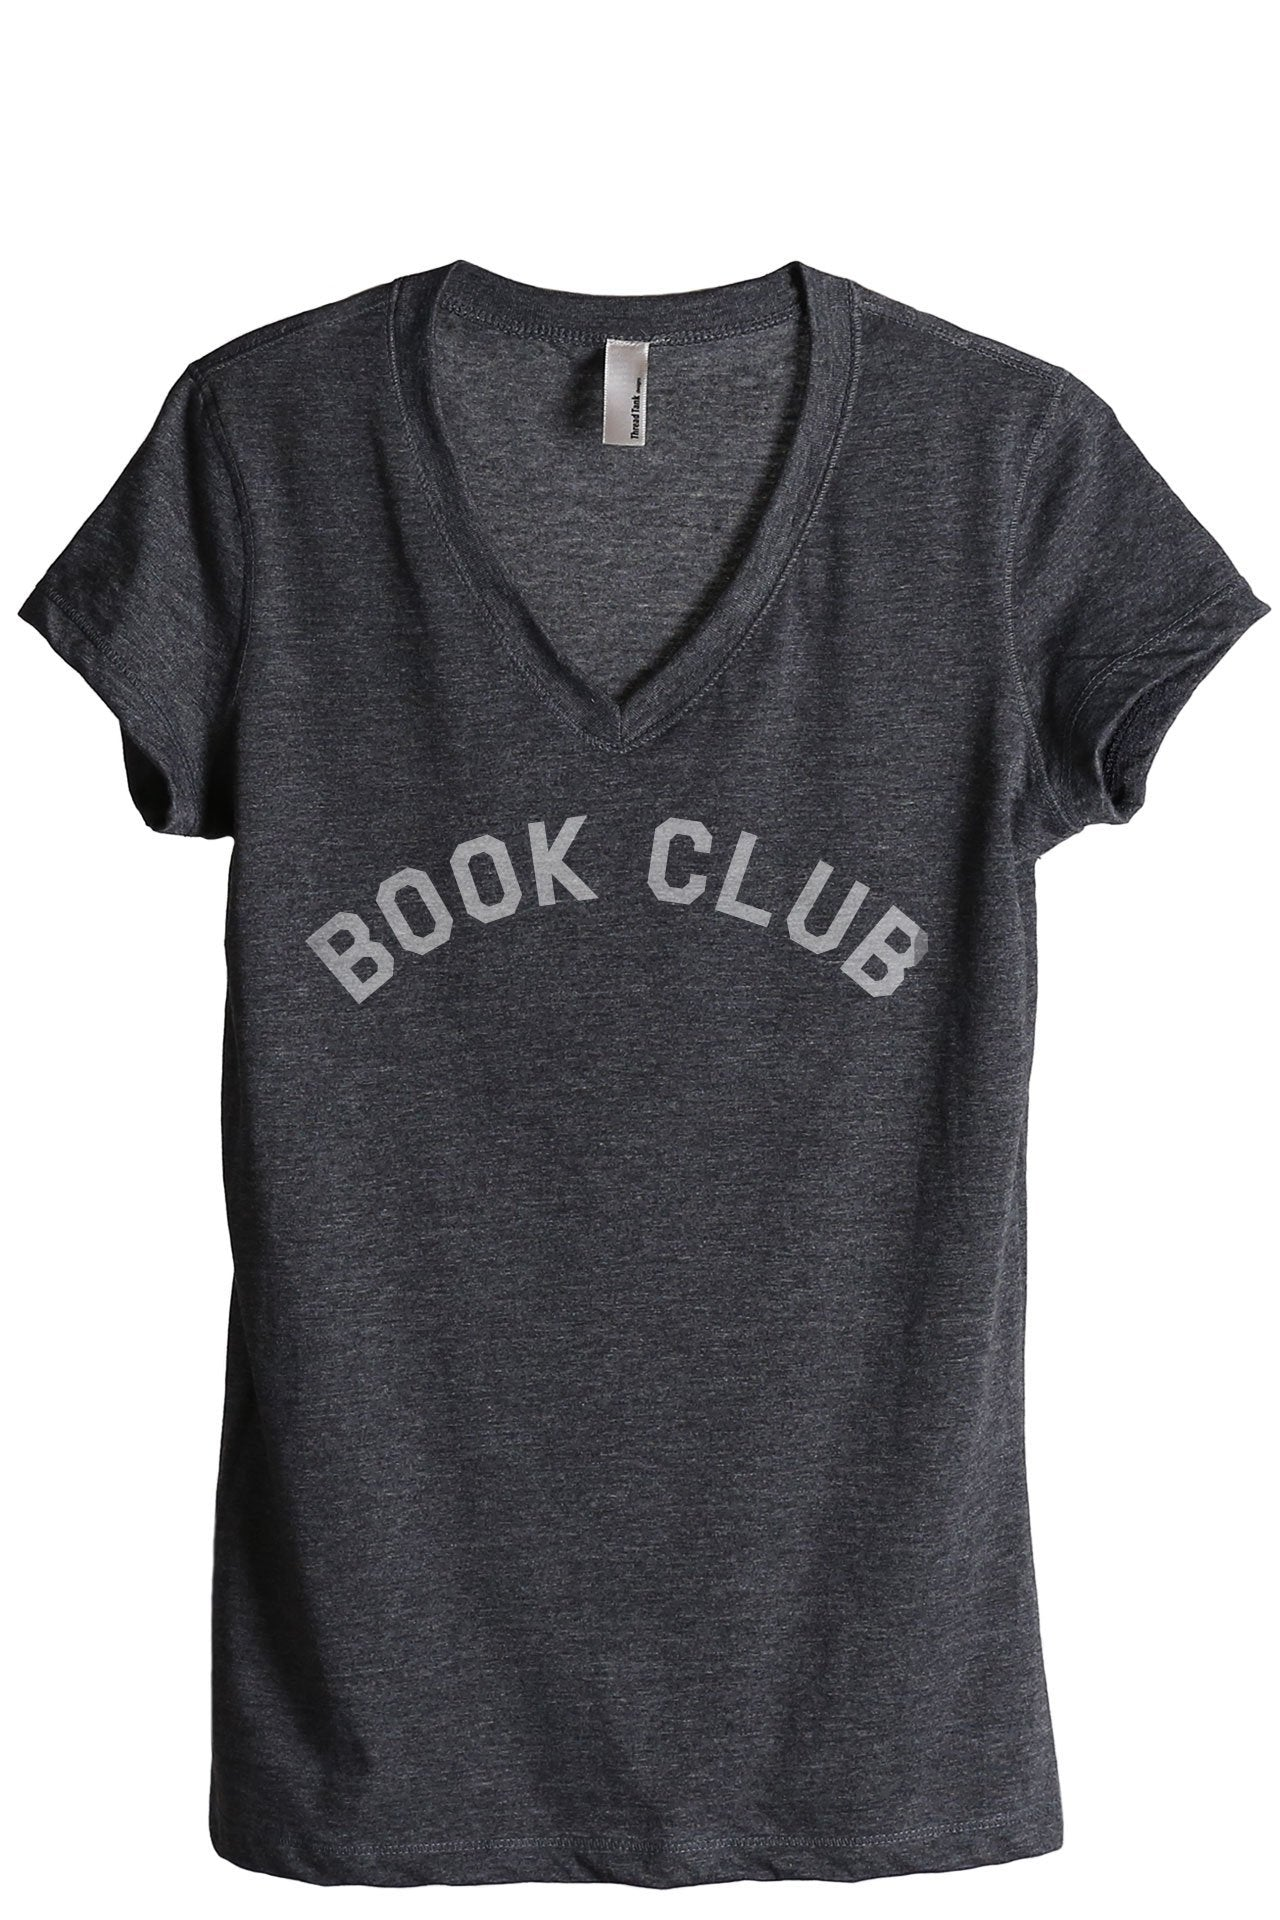 Book Club Women's Relaxed Crewneck T-Shirt Top Tee Charcoal Grey